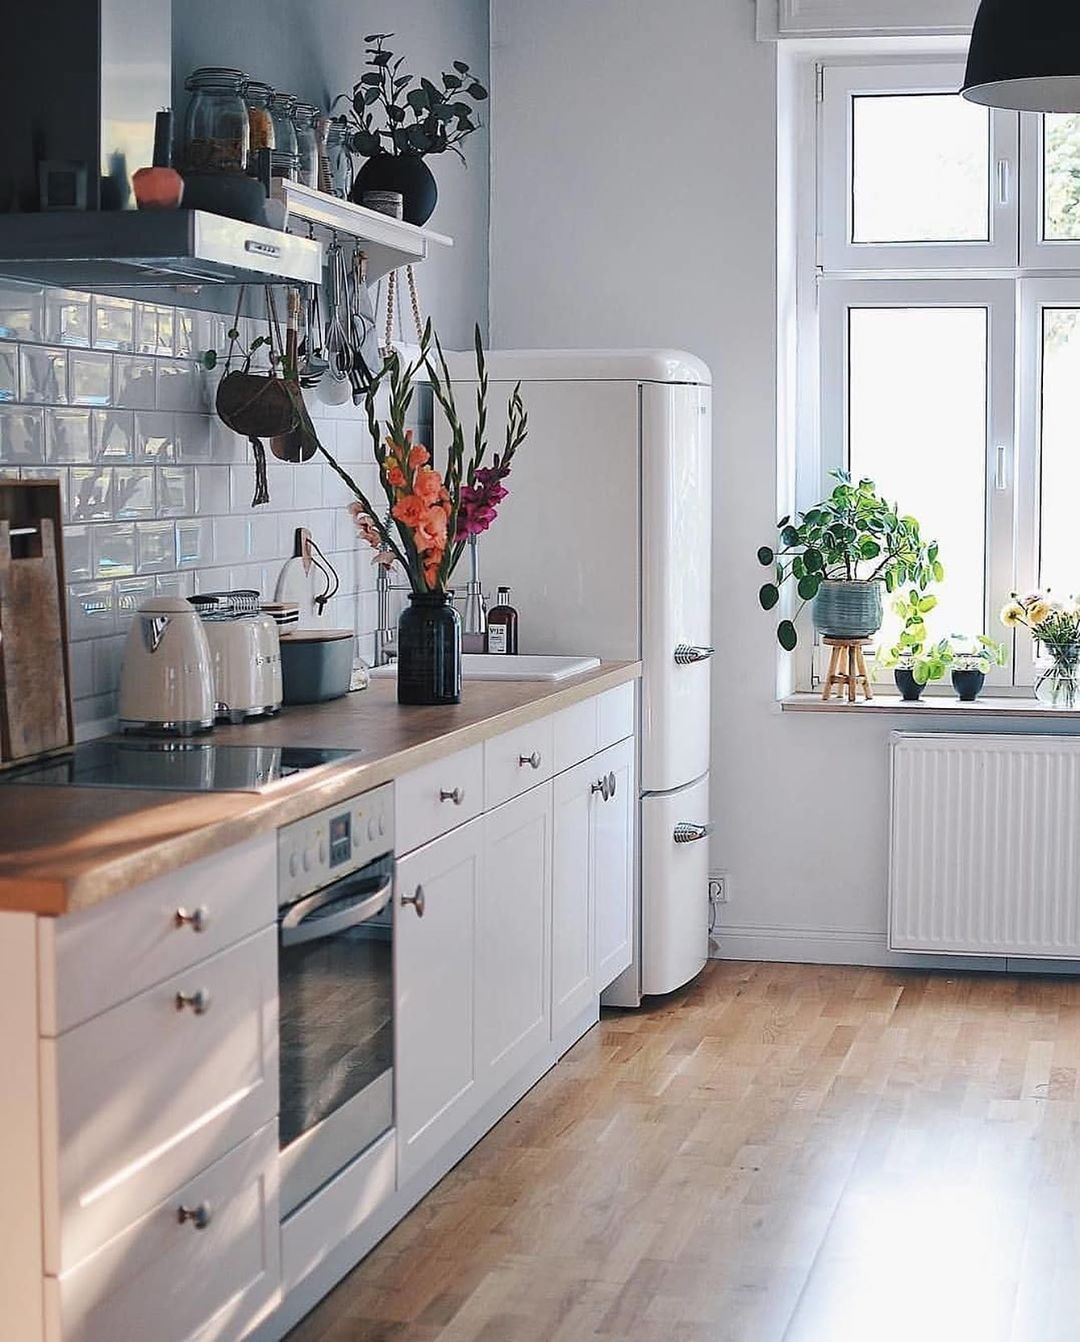 "Photo of NORDIK SPACE auf Instagram: ""Beginnen Sie Ihren Morgen direkt in einer schönen Küche! 📸: @ jennifer.paro • • • • • #kitchen #kitchendesign #interiordesign #home # design… """